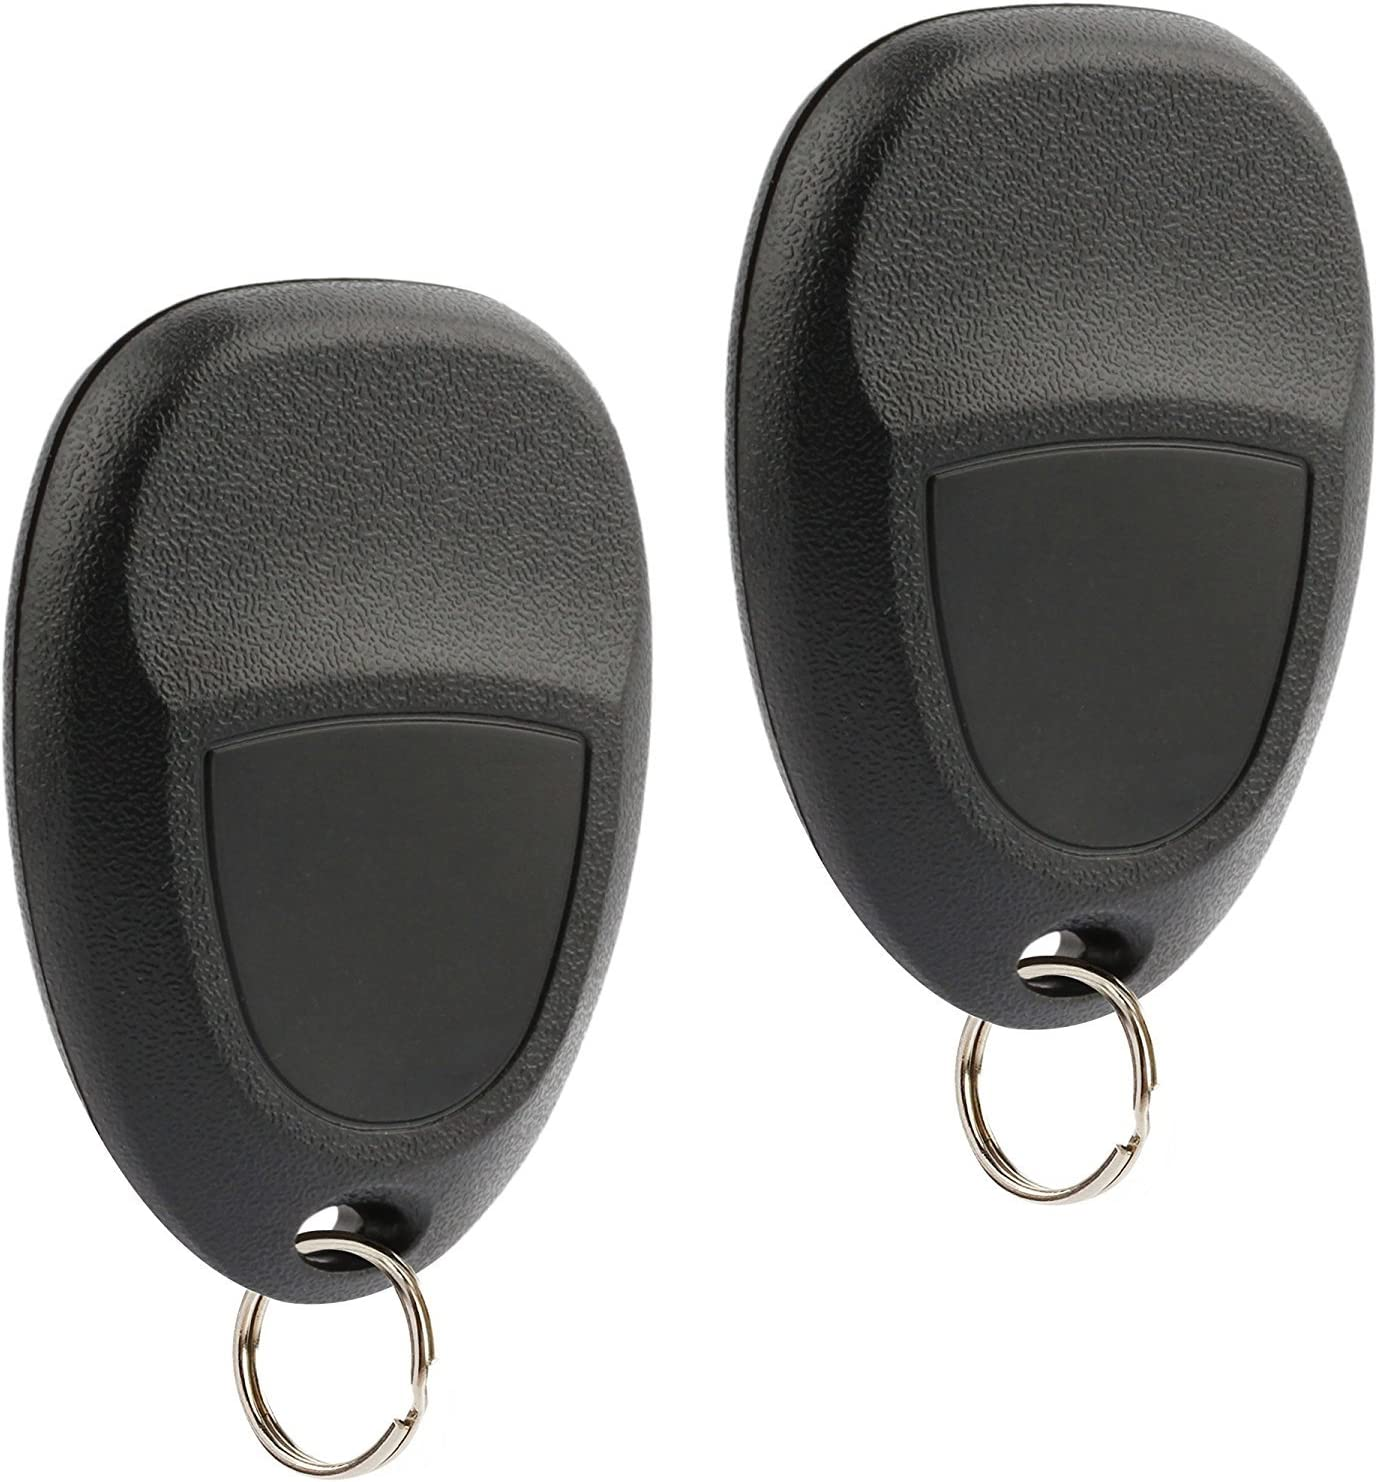 Saturn Buick Car Key Fob Keyless Entry Remote fits Chevy Set of 2 GMC Cadillac